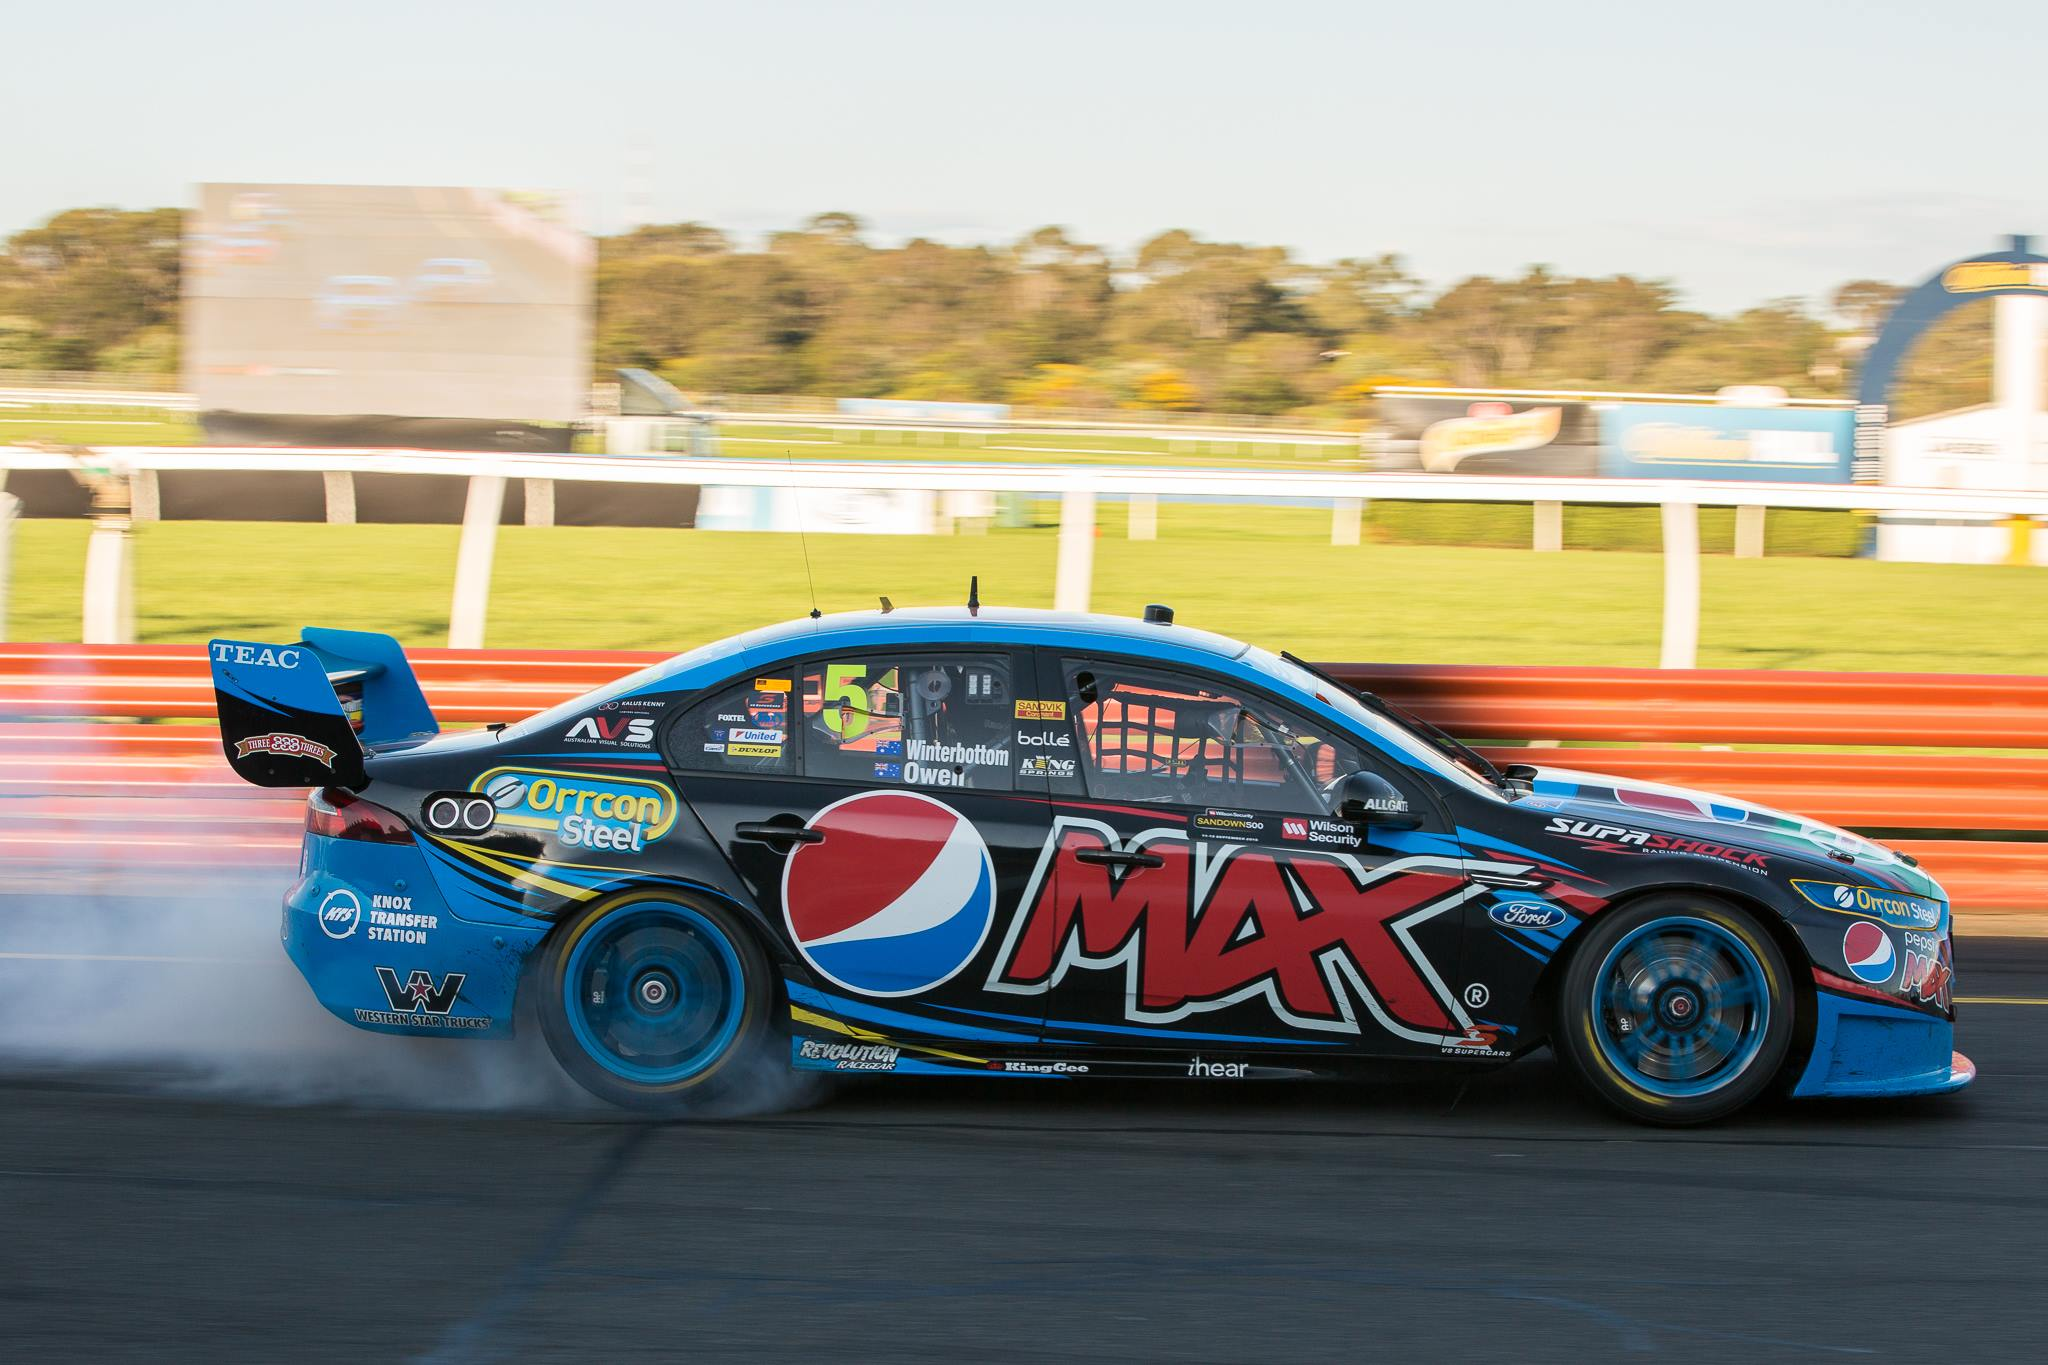 Mark Winterbottom celebrating his Sandown 500 win with a $3000 burnout. Photo by Rhys Vandersyde